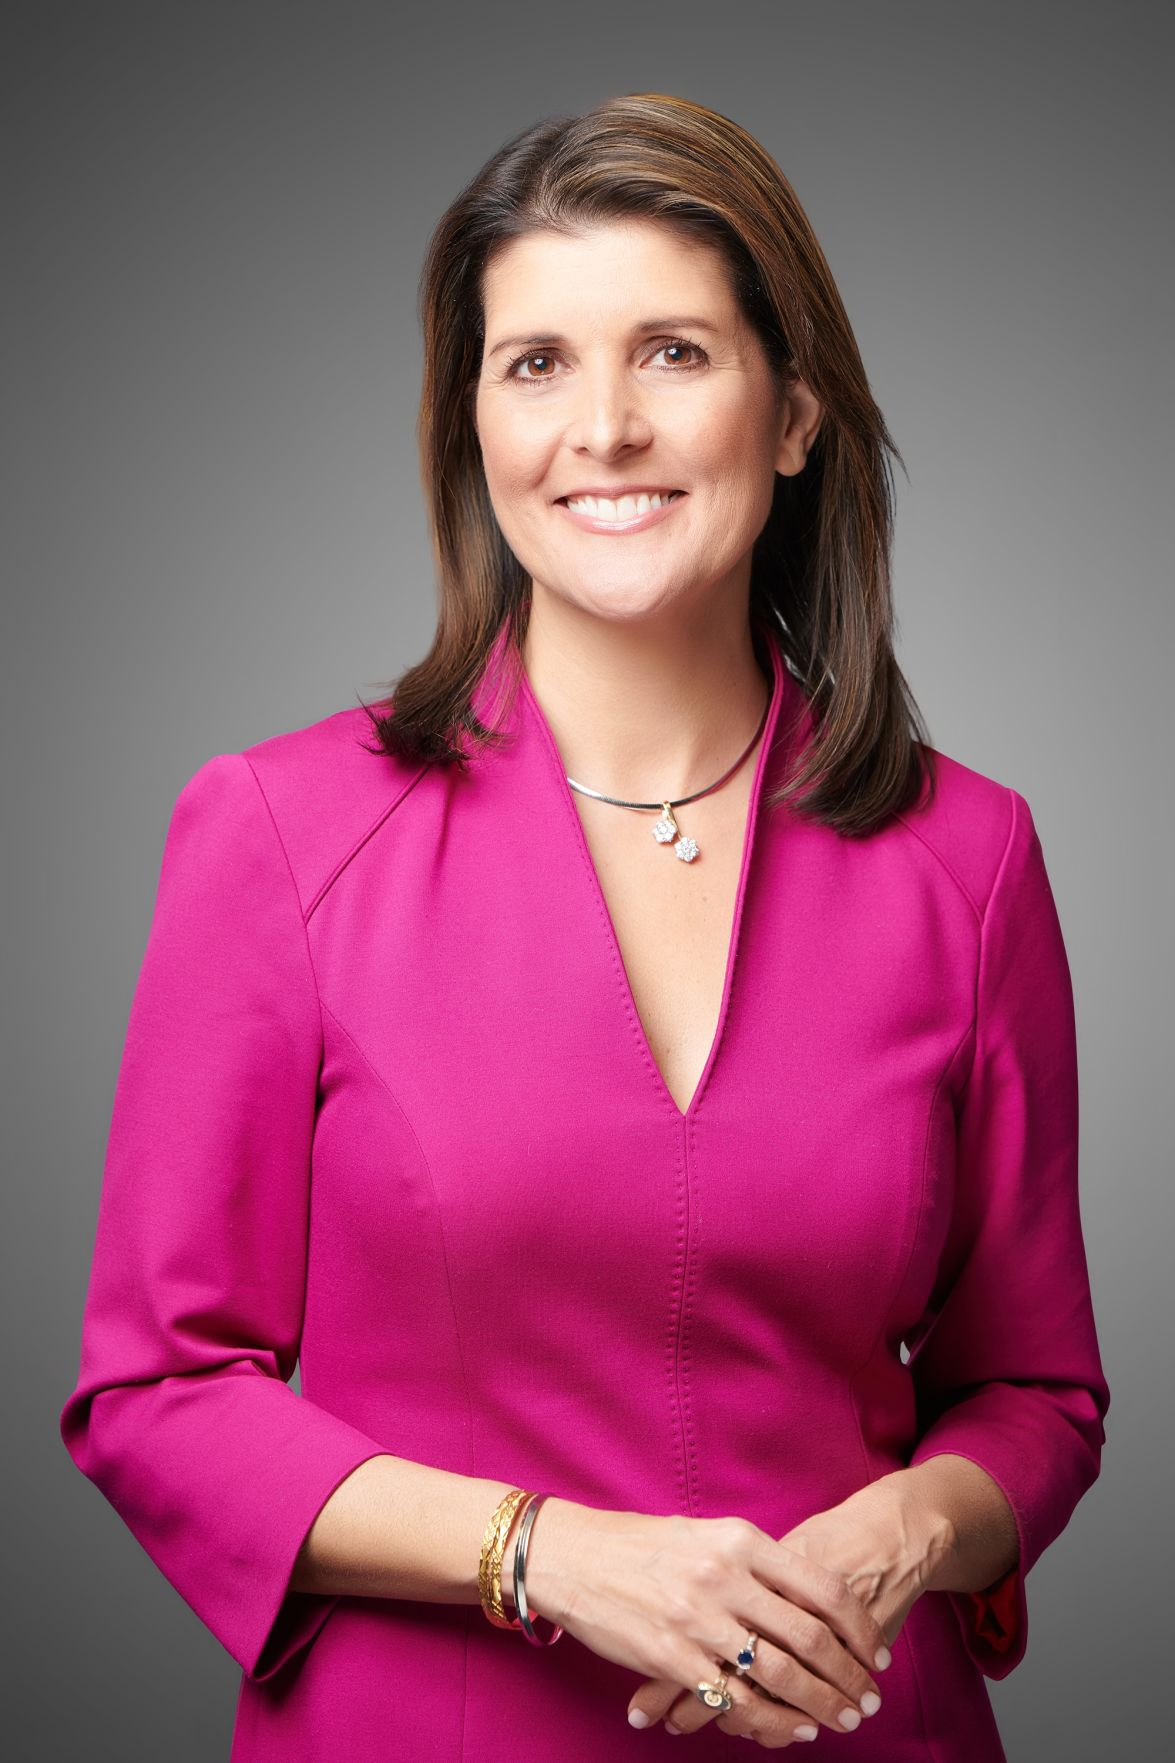 She's back: How Nikki Haley is ramping up her profile ...